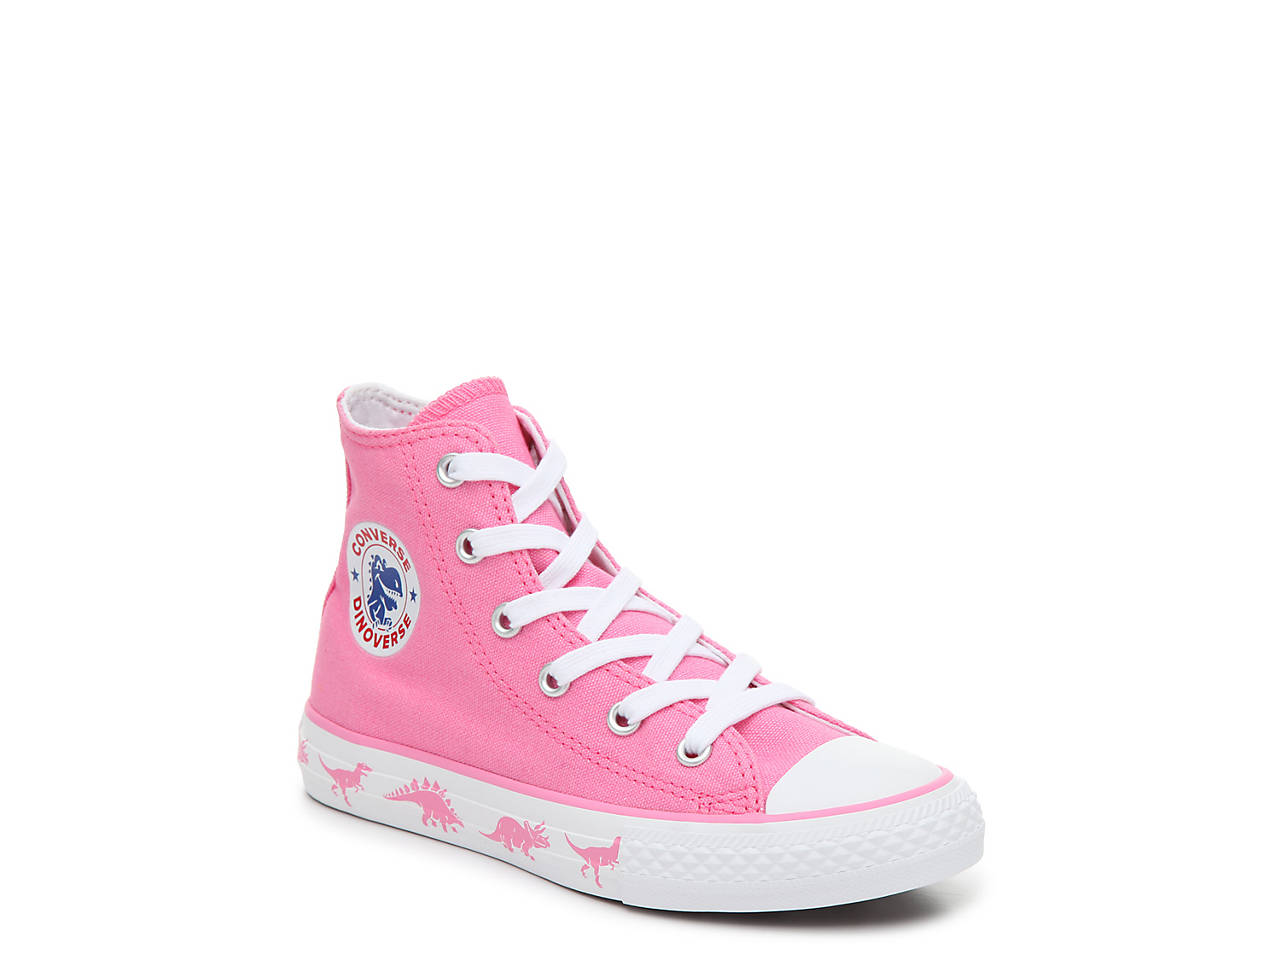 6bd46c6db987 Converse Chuck Taylor All Star Dinosaur Toddler   Youth High-Top ...